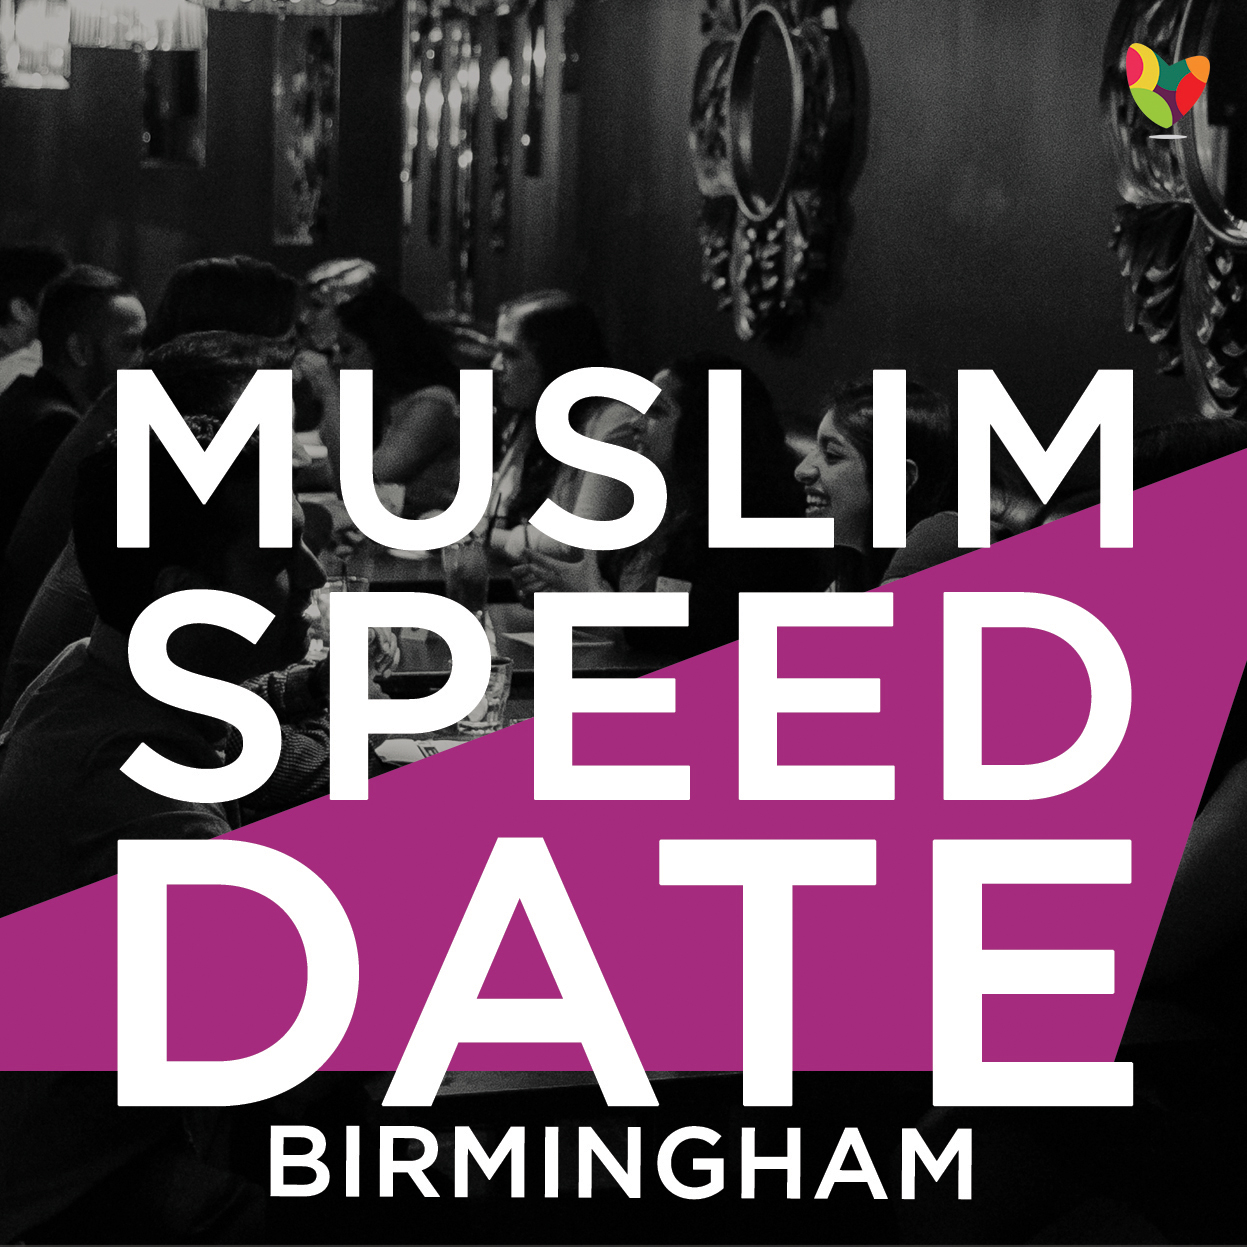 Muslim speed dating houston